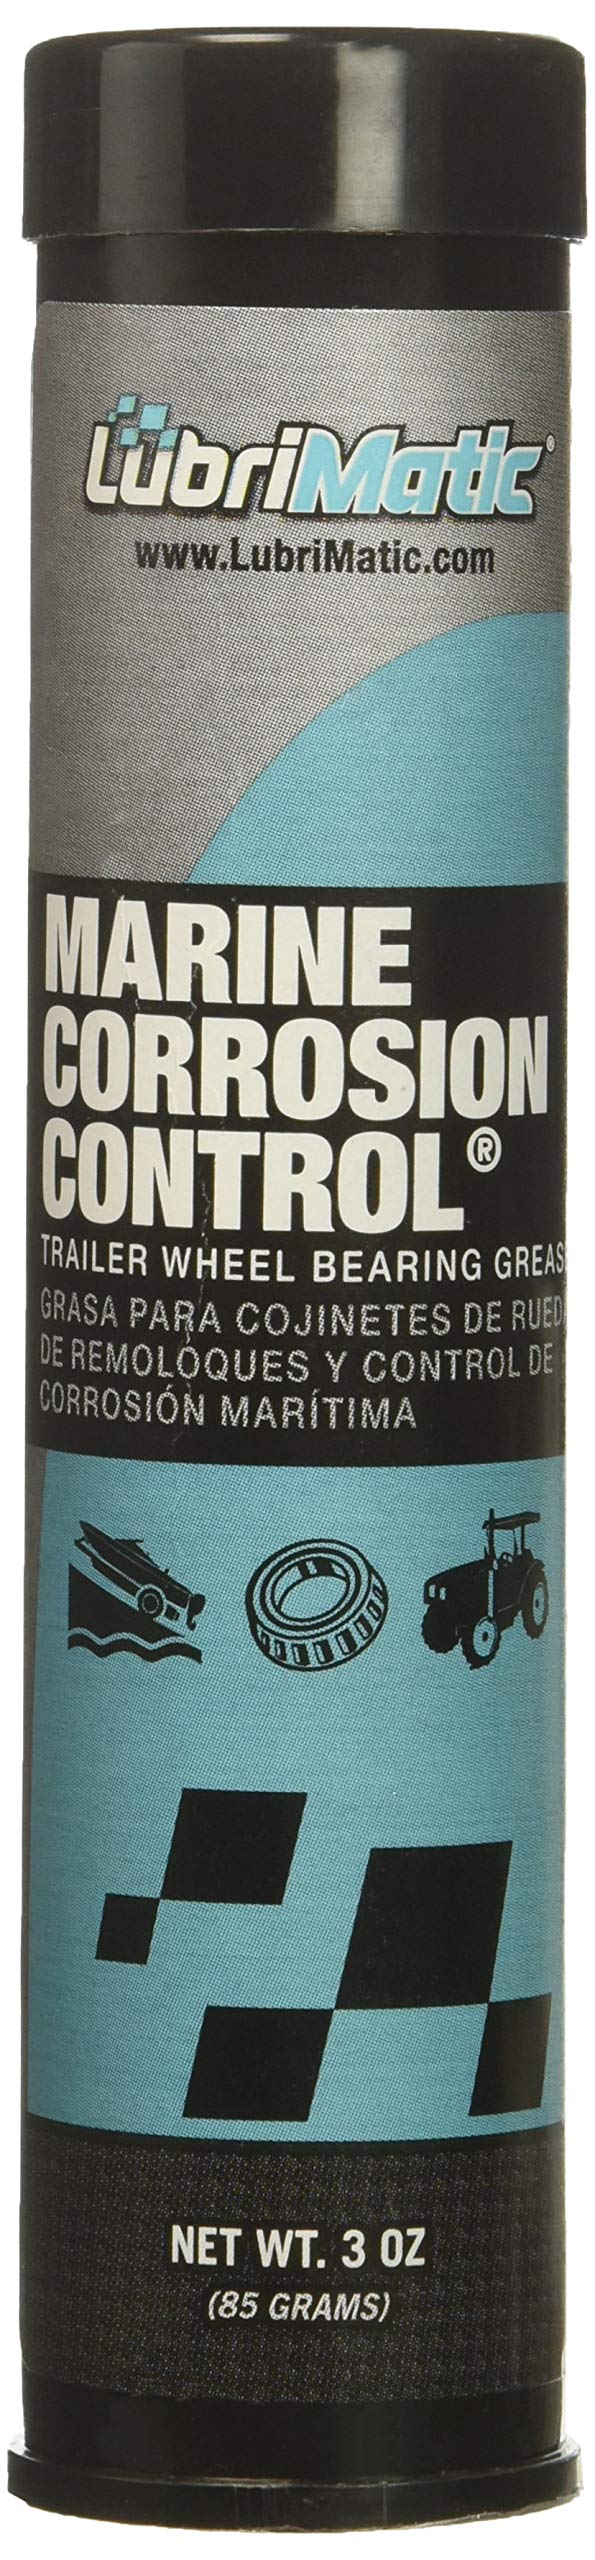 LubriMatic Aqua 11400 Marine Trailer Wheel Bearing and Corrosion Control Grease, 3 oz. Cartridge